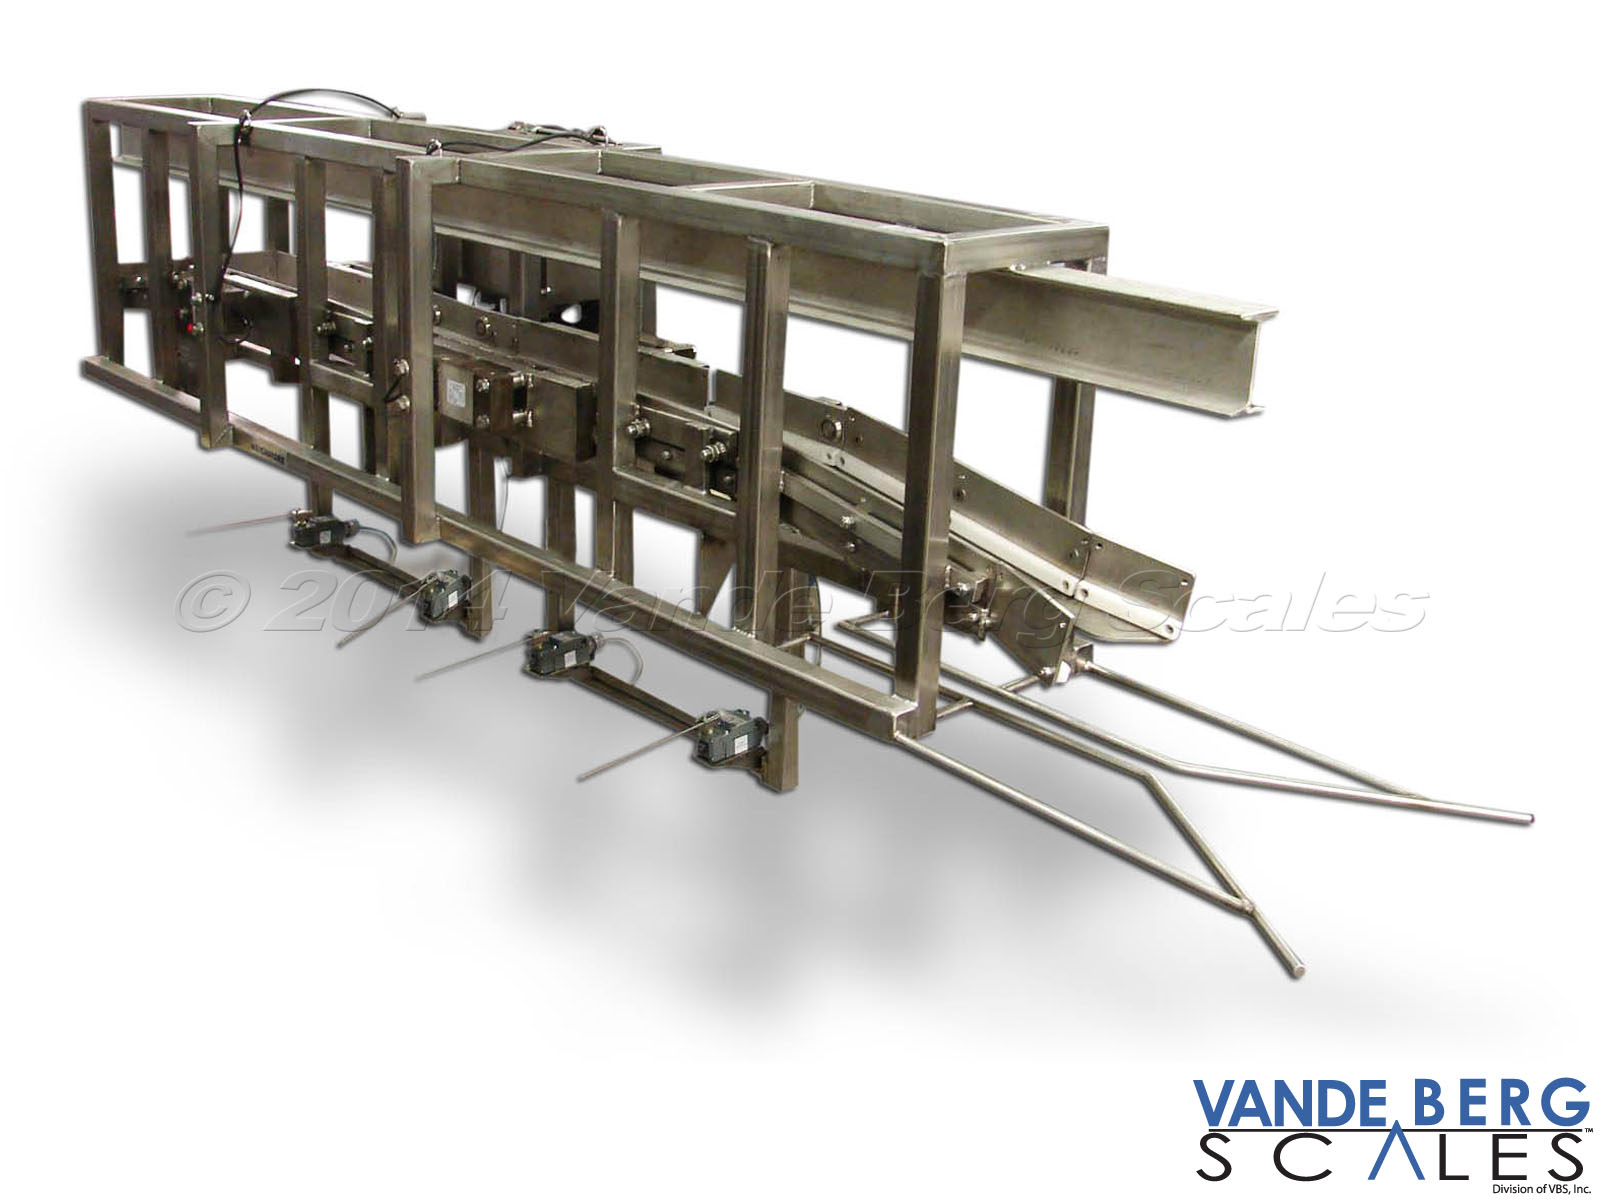 Overhead Chain Scale designed specifically for In-Motion Hide Sorting